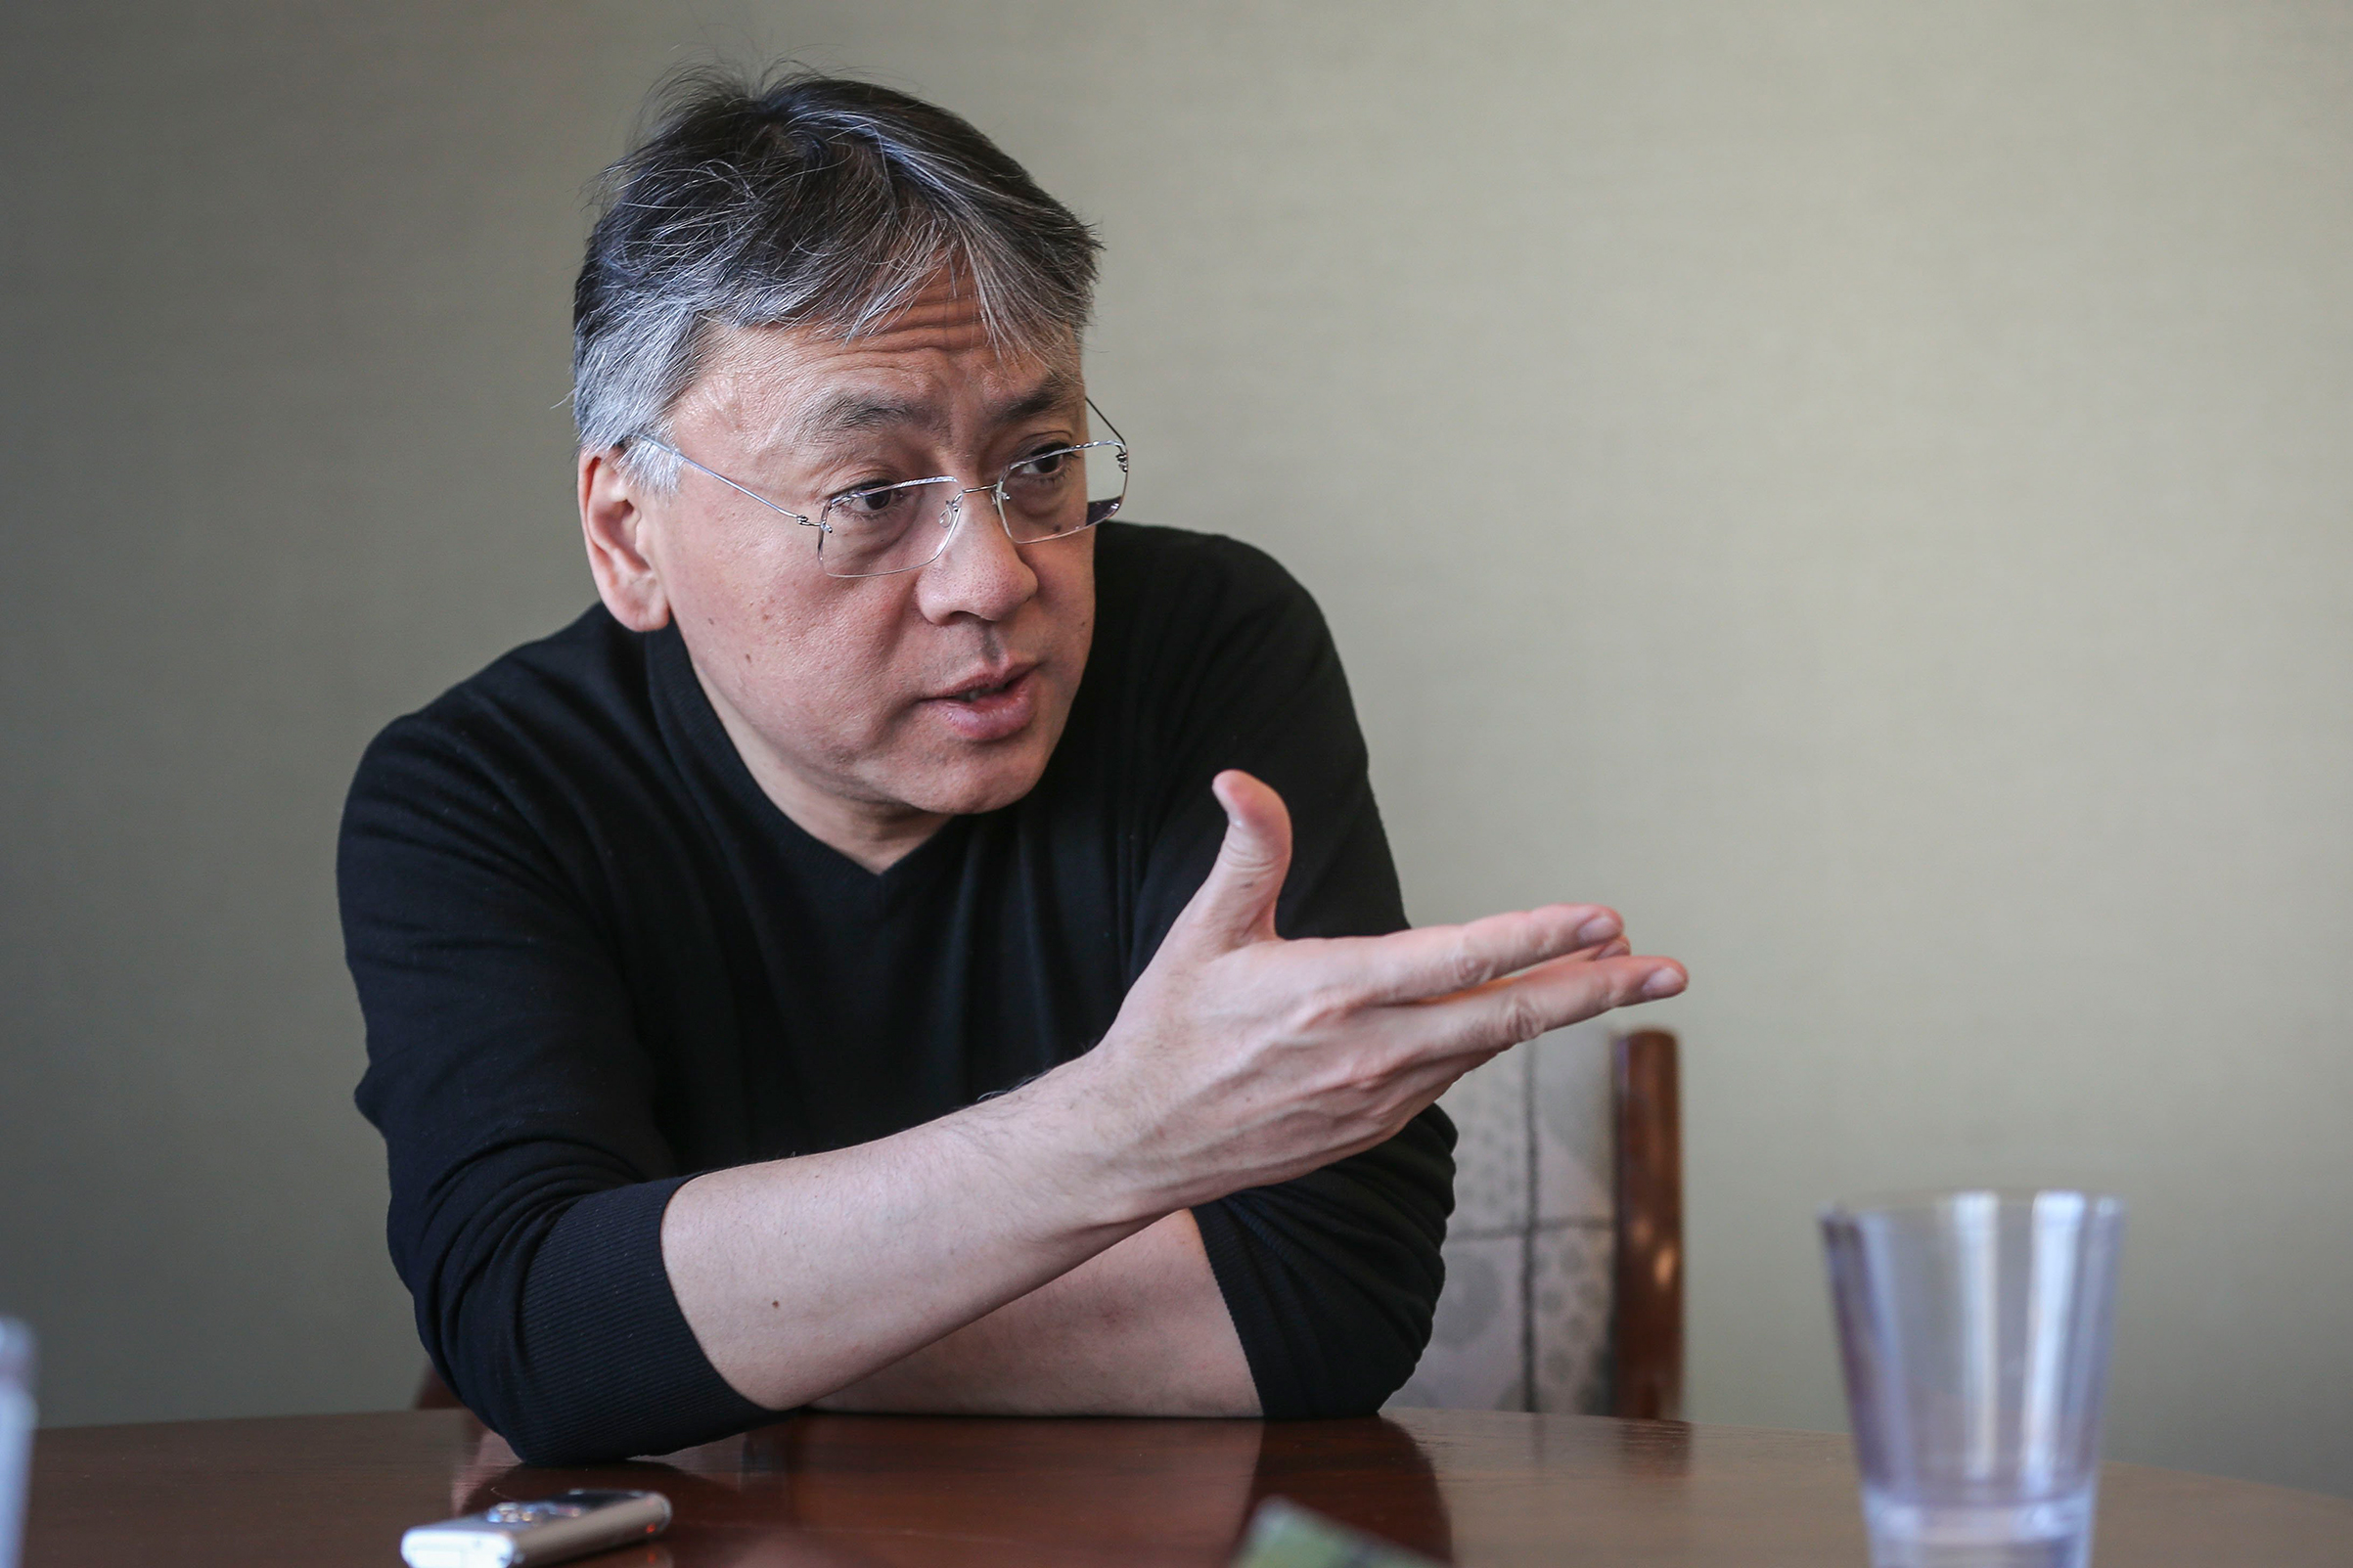 Author Kazuo Ishiguro, seen here on March 17, 2015 in Toronto, won the 2017 Nobel Prize in Literature.